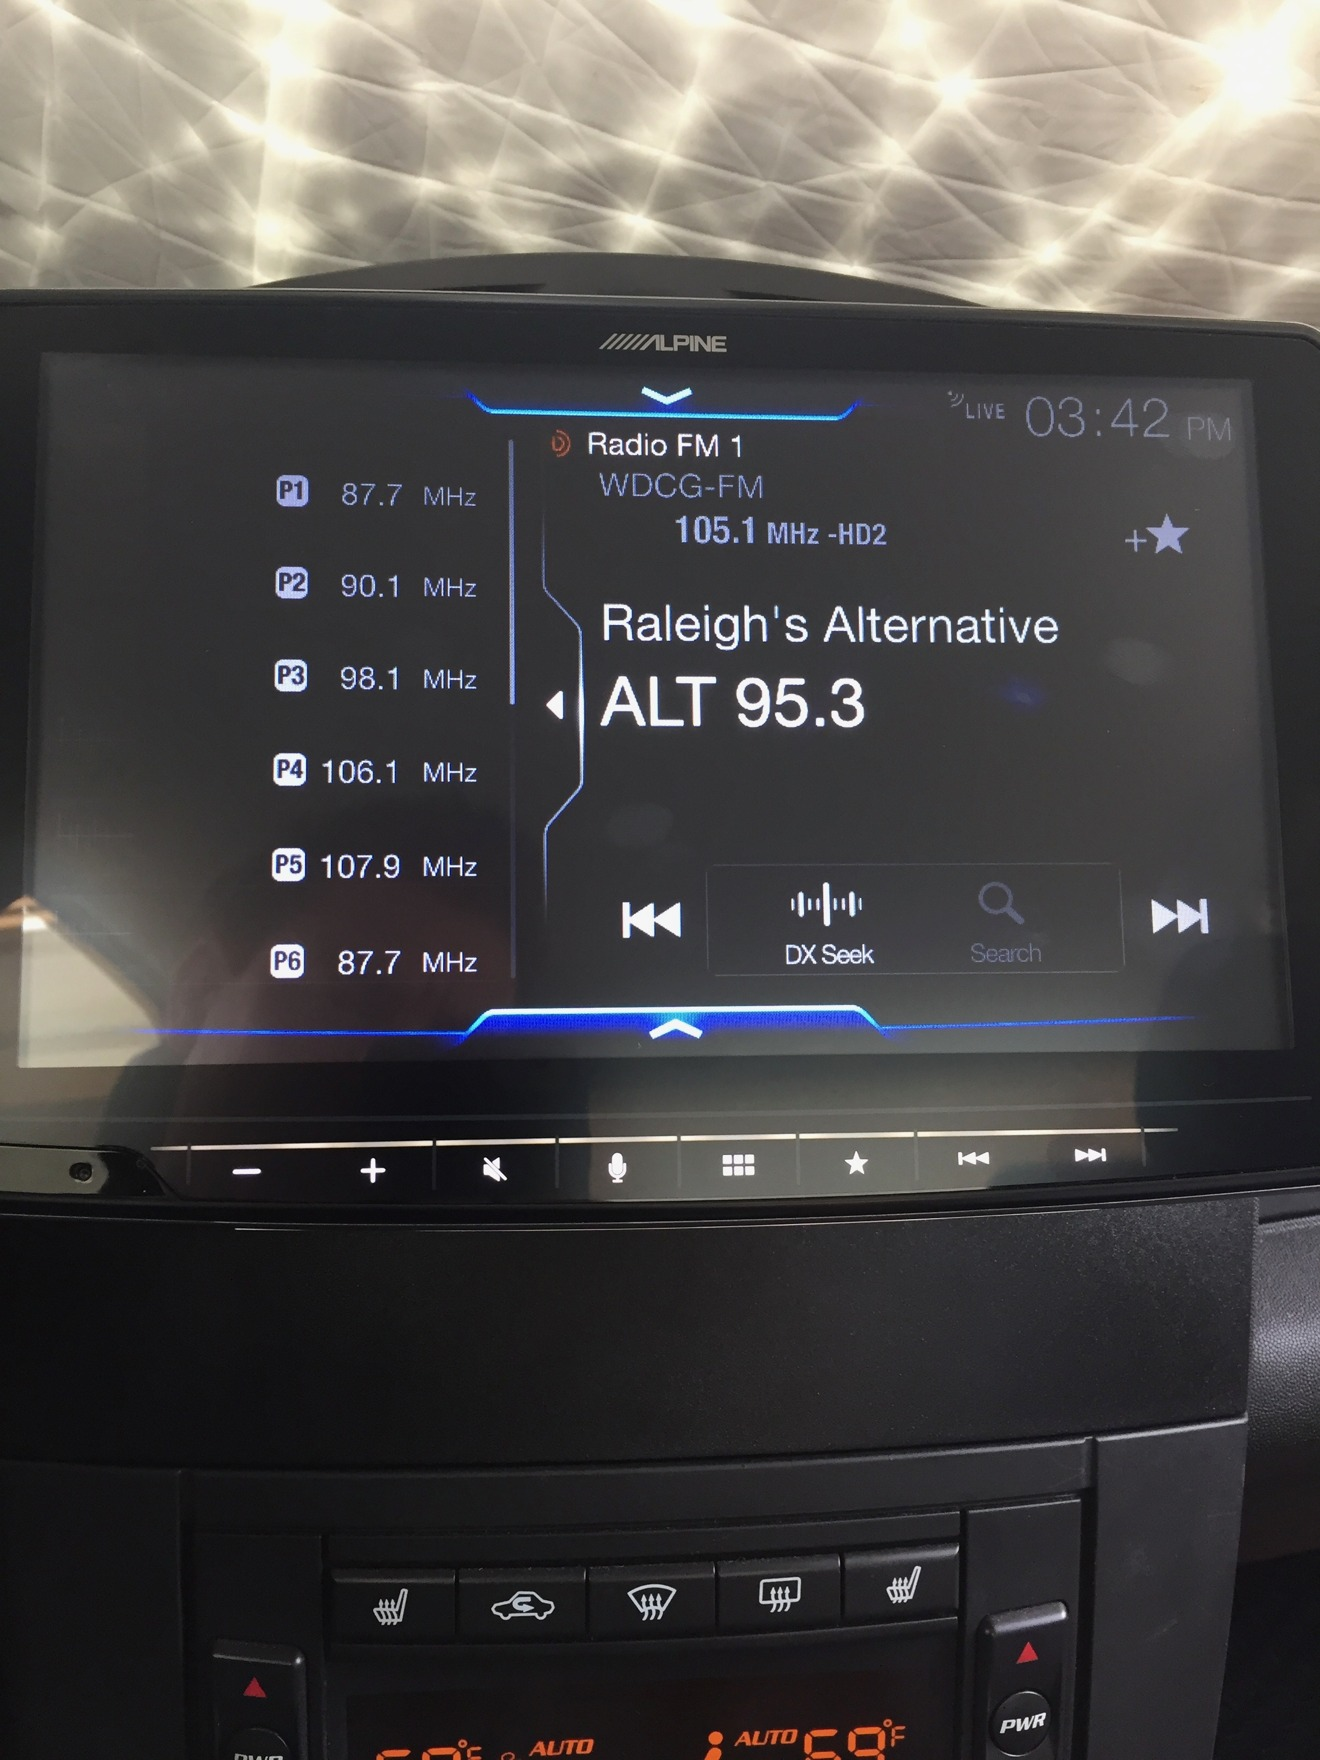 This interface looks nothing like Android Auto or CarPlay, and that sucks.